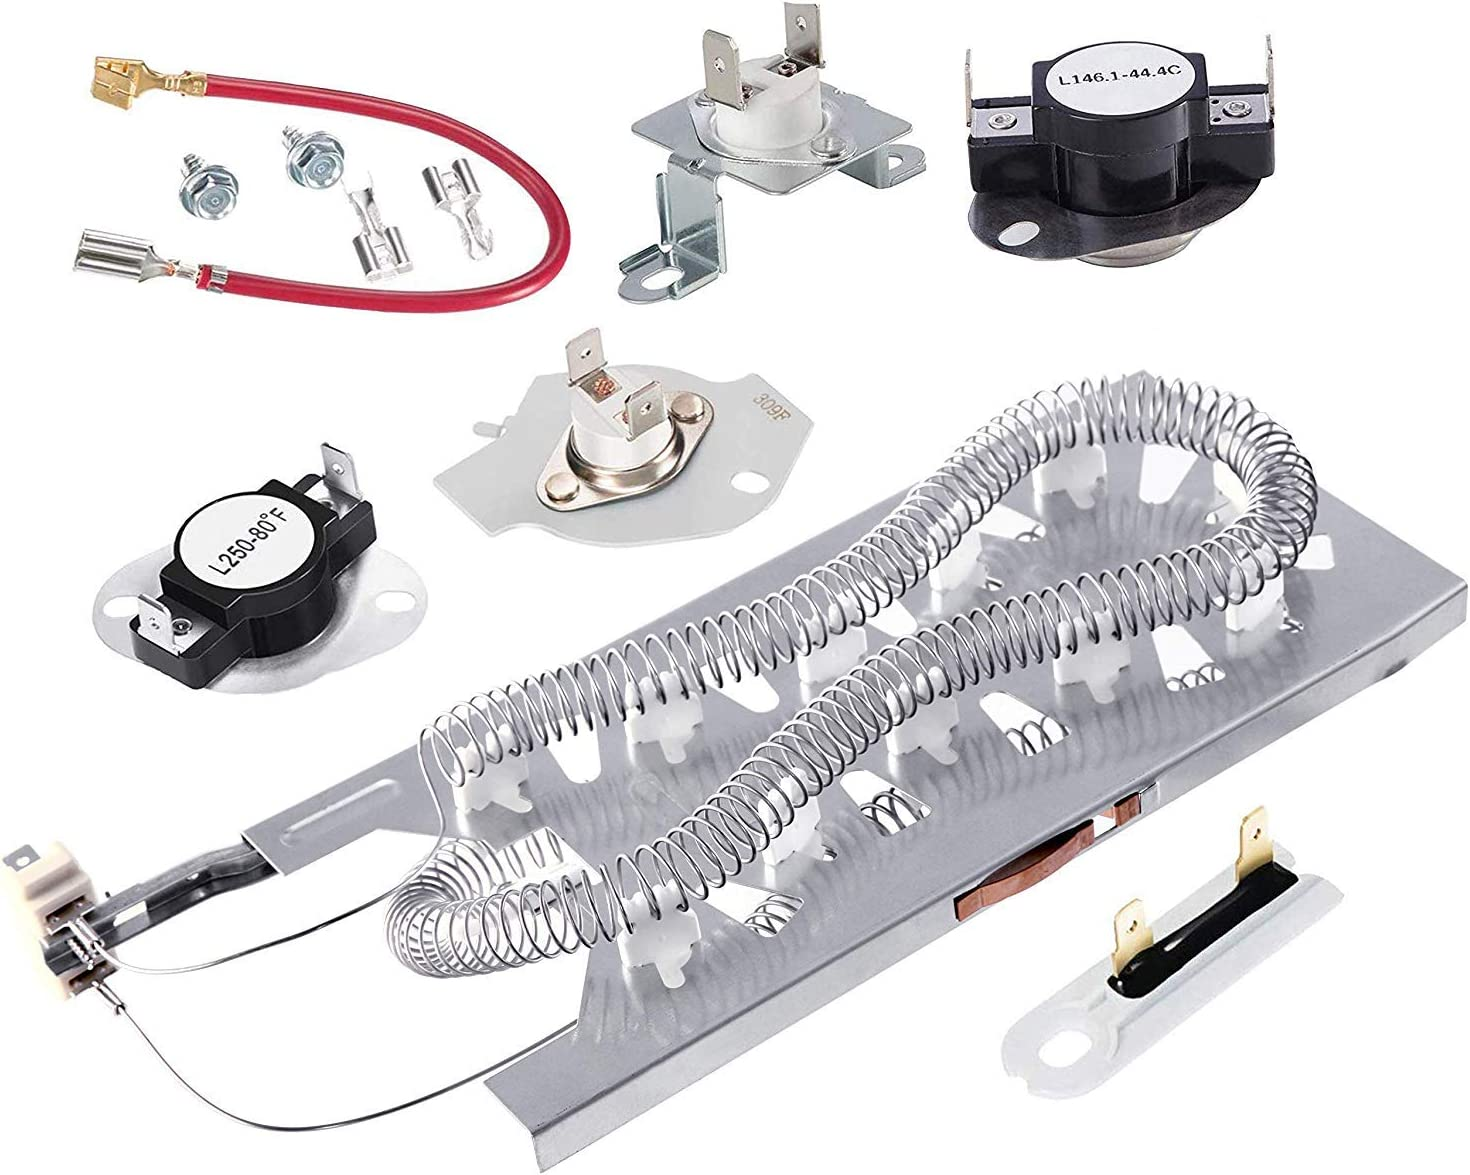 3387747 279973 Dryer Heating Element Thermal Cut Off Fuse Kit New